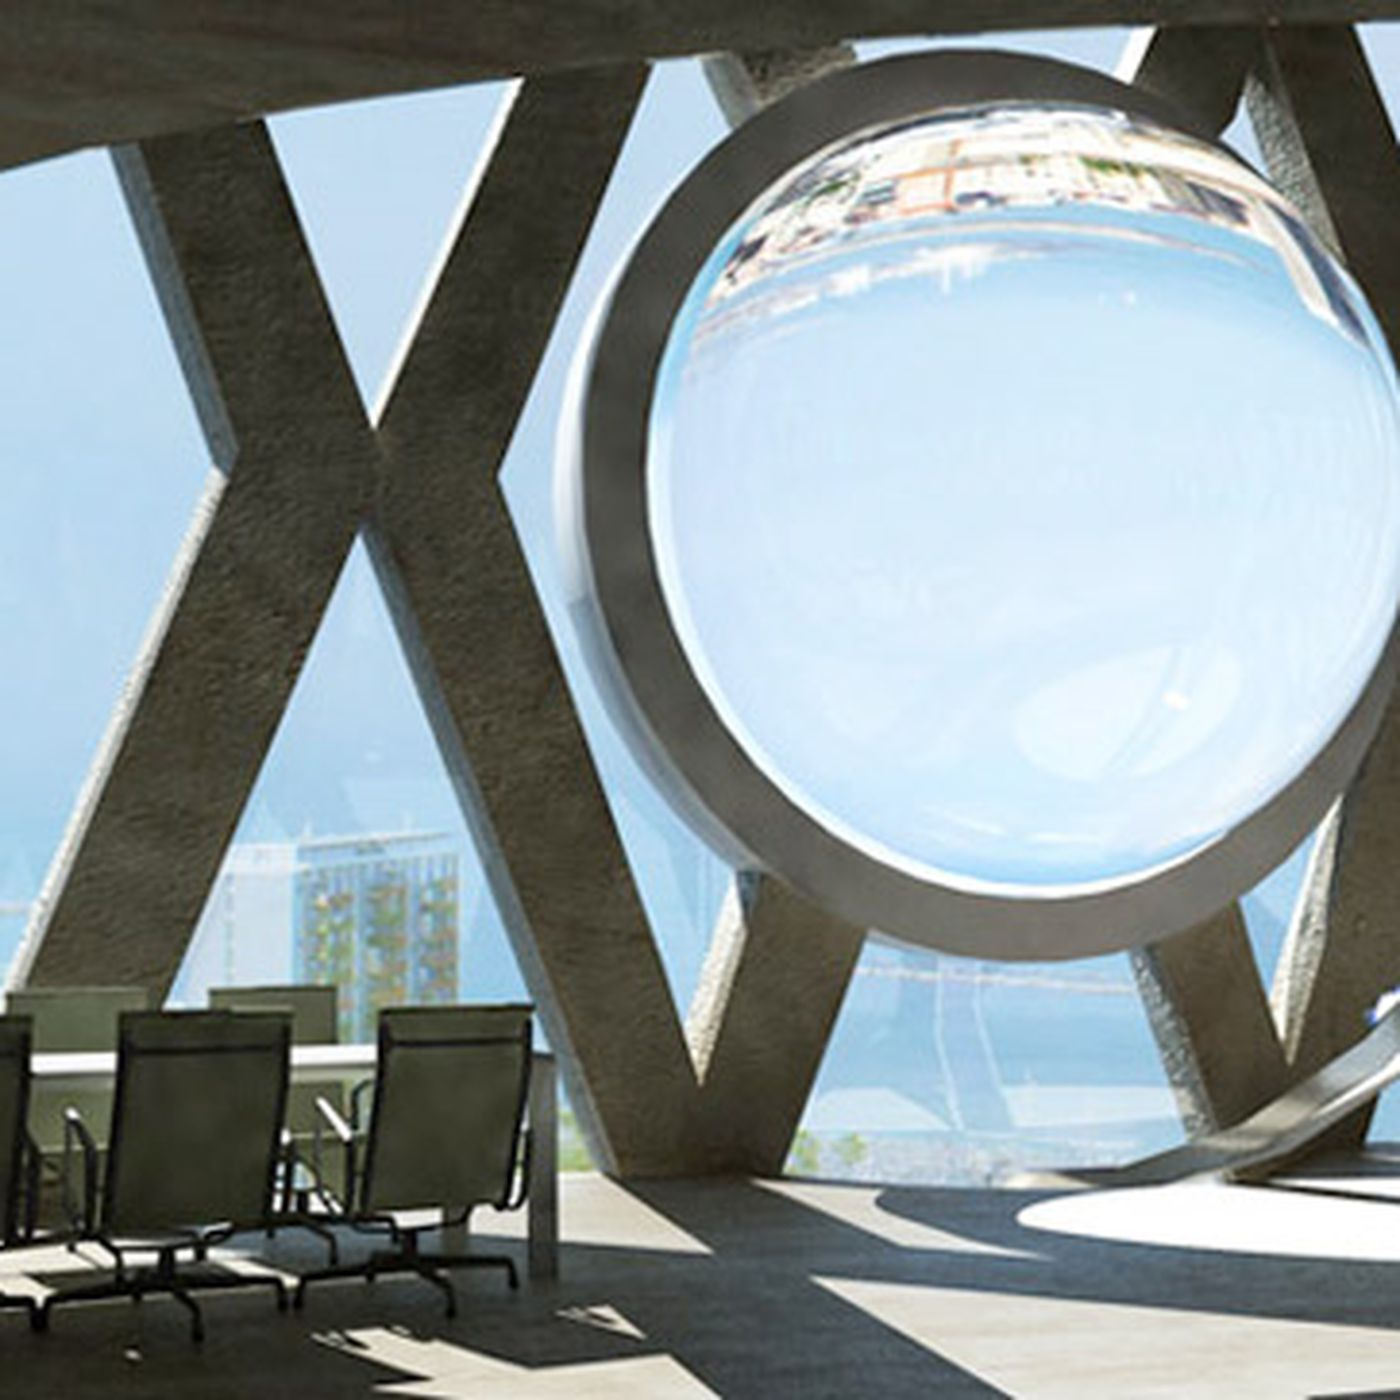 Eco-friendly art: Andre Broessel's glass orb helps maximize